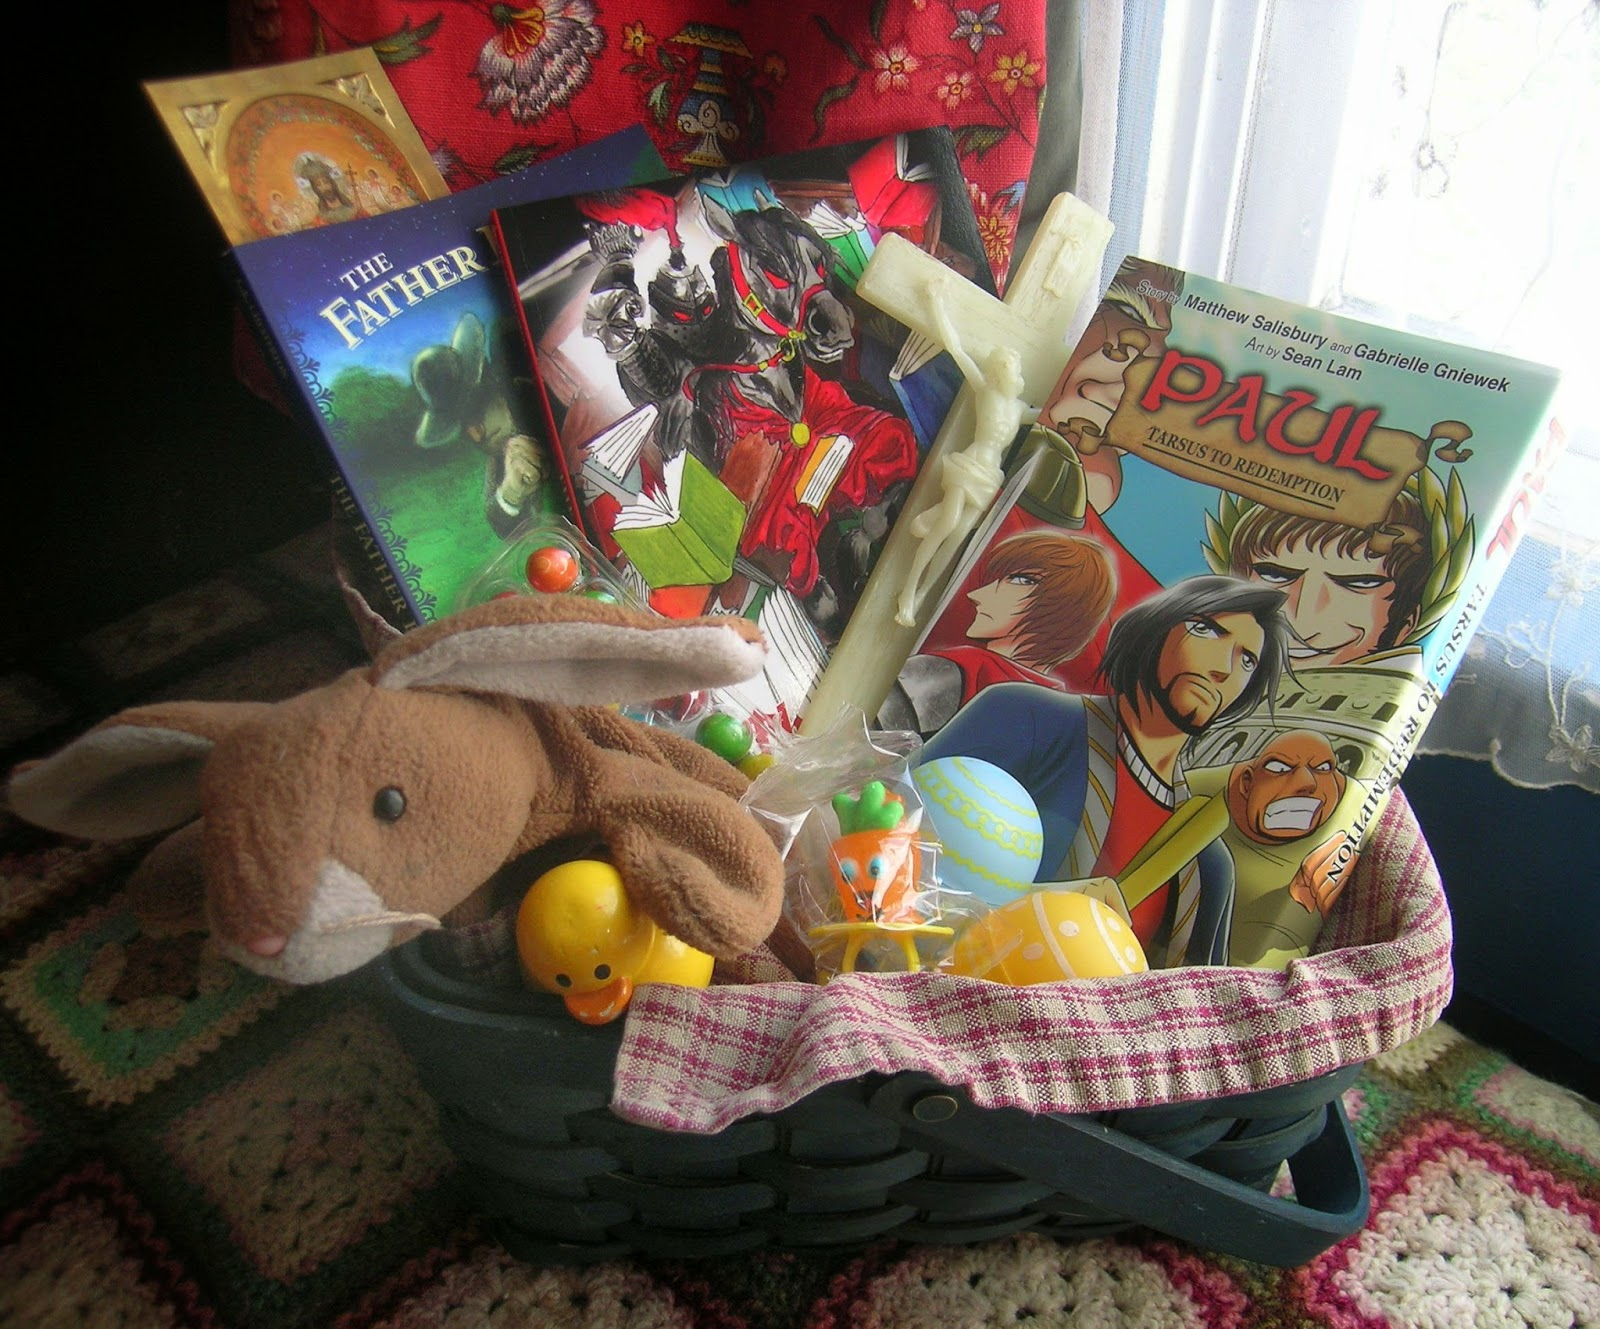 House art journal easter basket tour 2014 8 10 year old boy basket easter basket tour 2014 8 10 year old boy basket negle